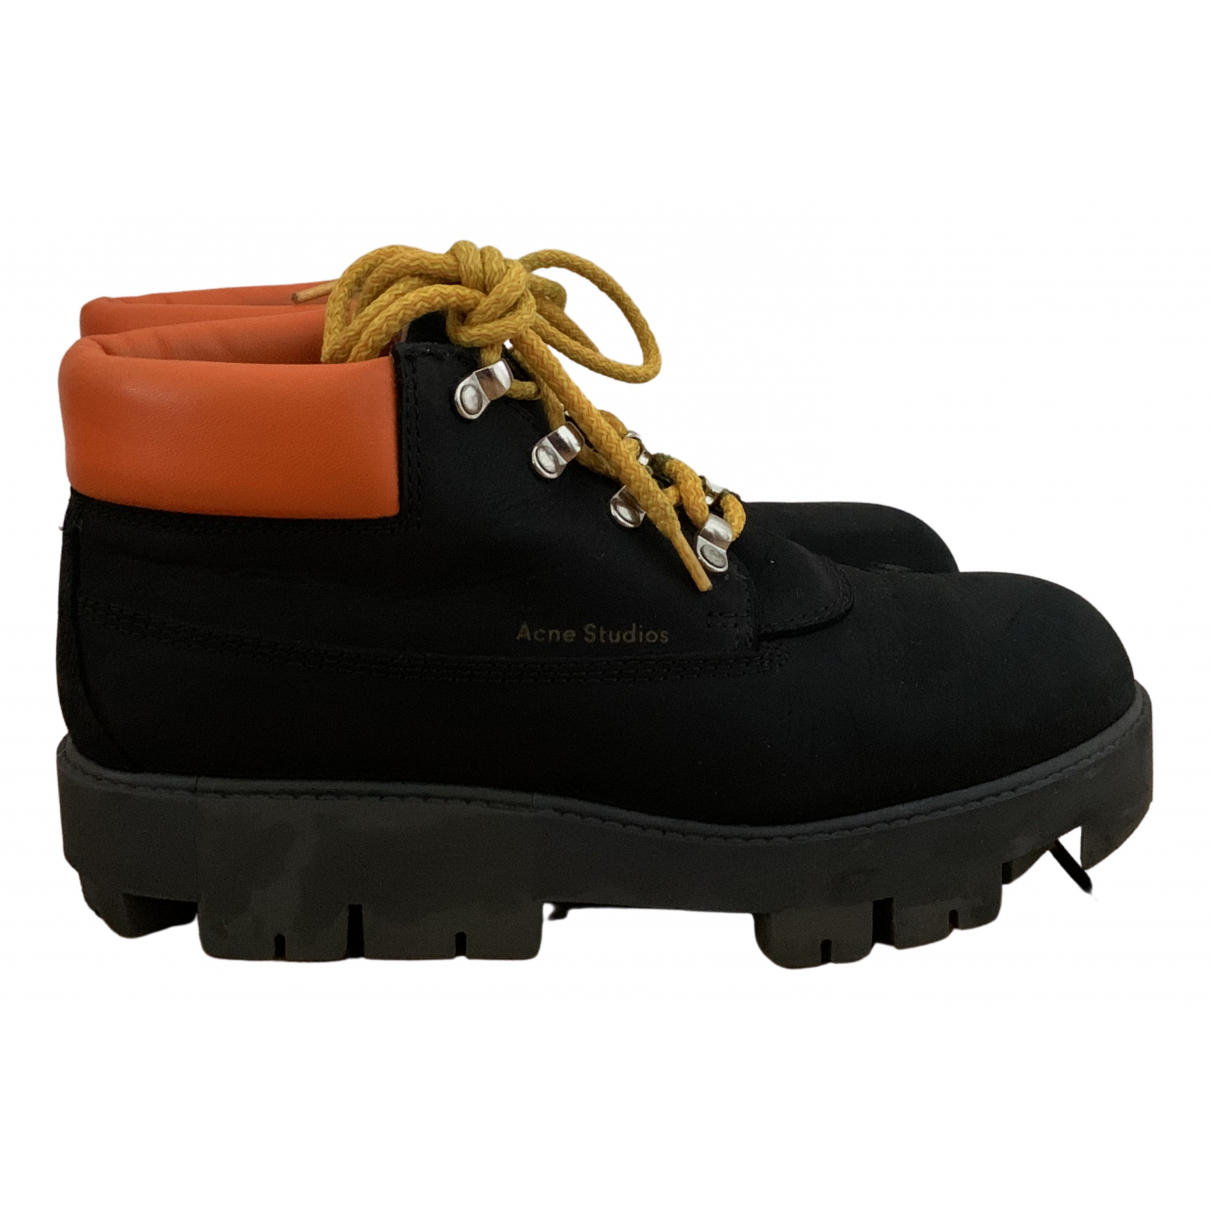 Acne Studios N Black Leather Ankle boots for Women 39 EU